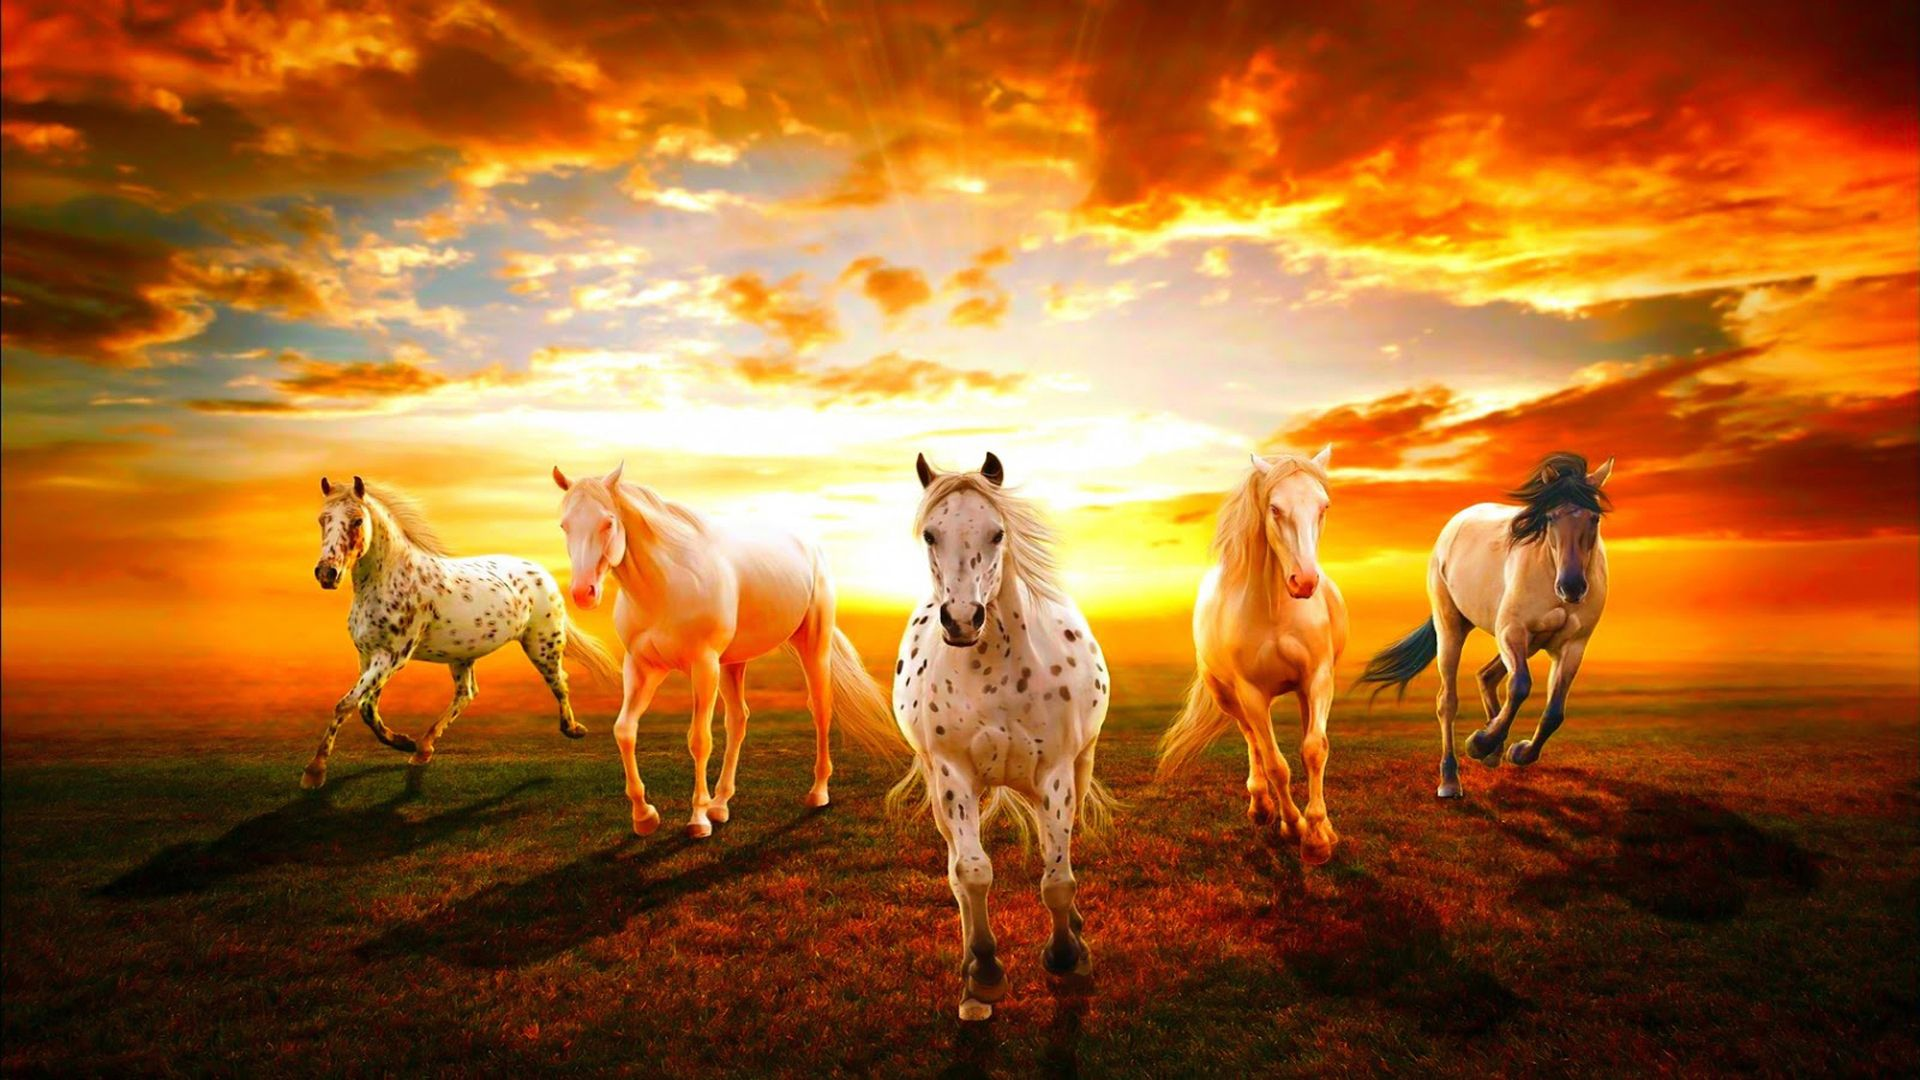 horse hd wallpapers 1080p